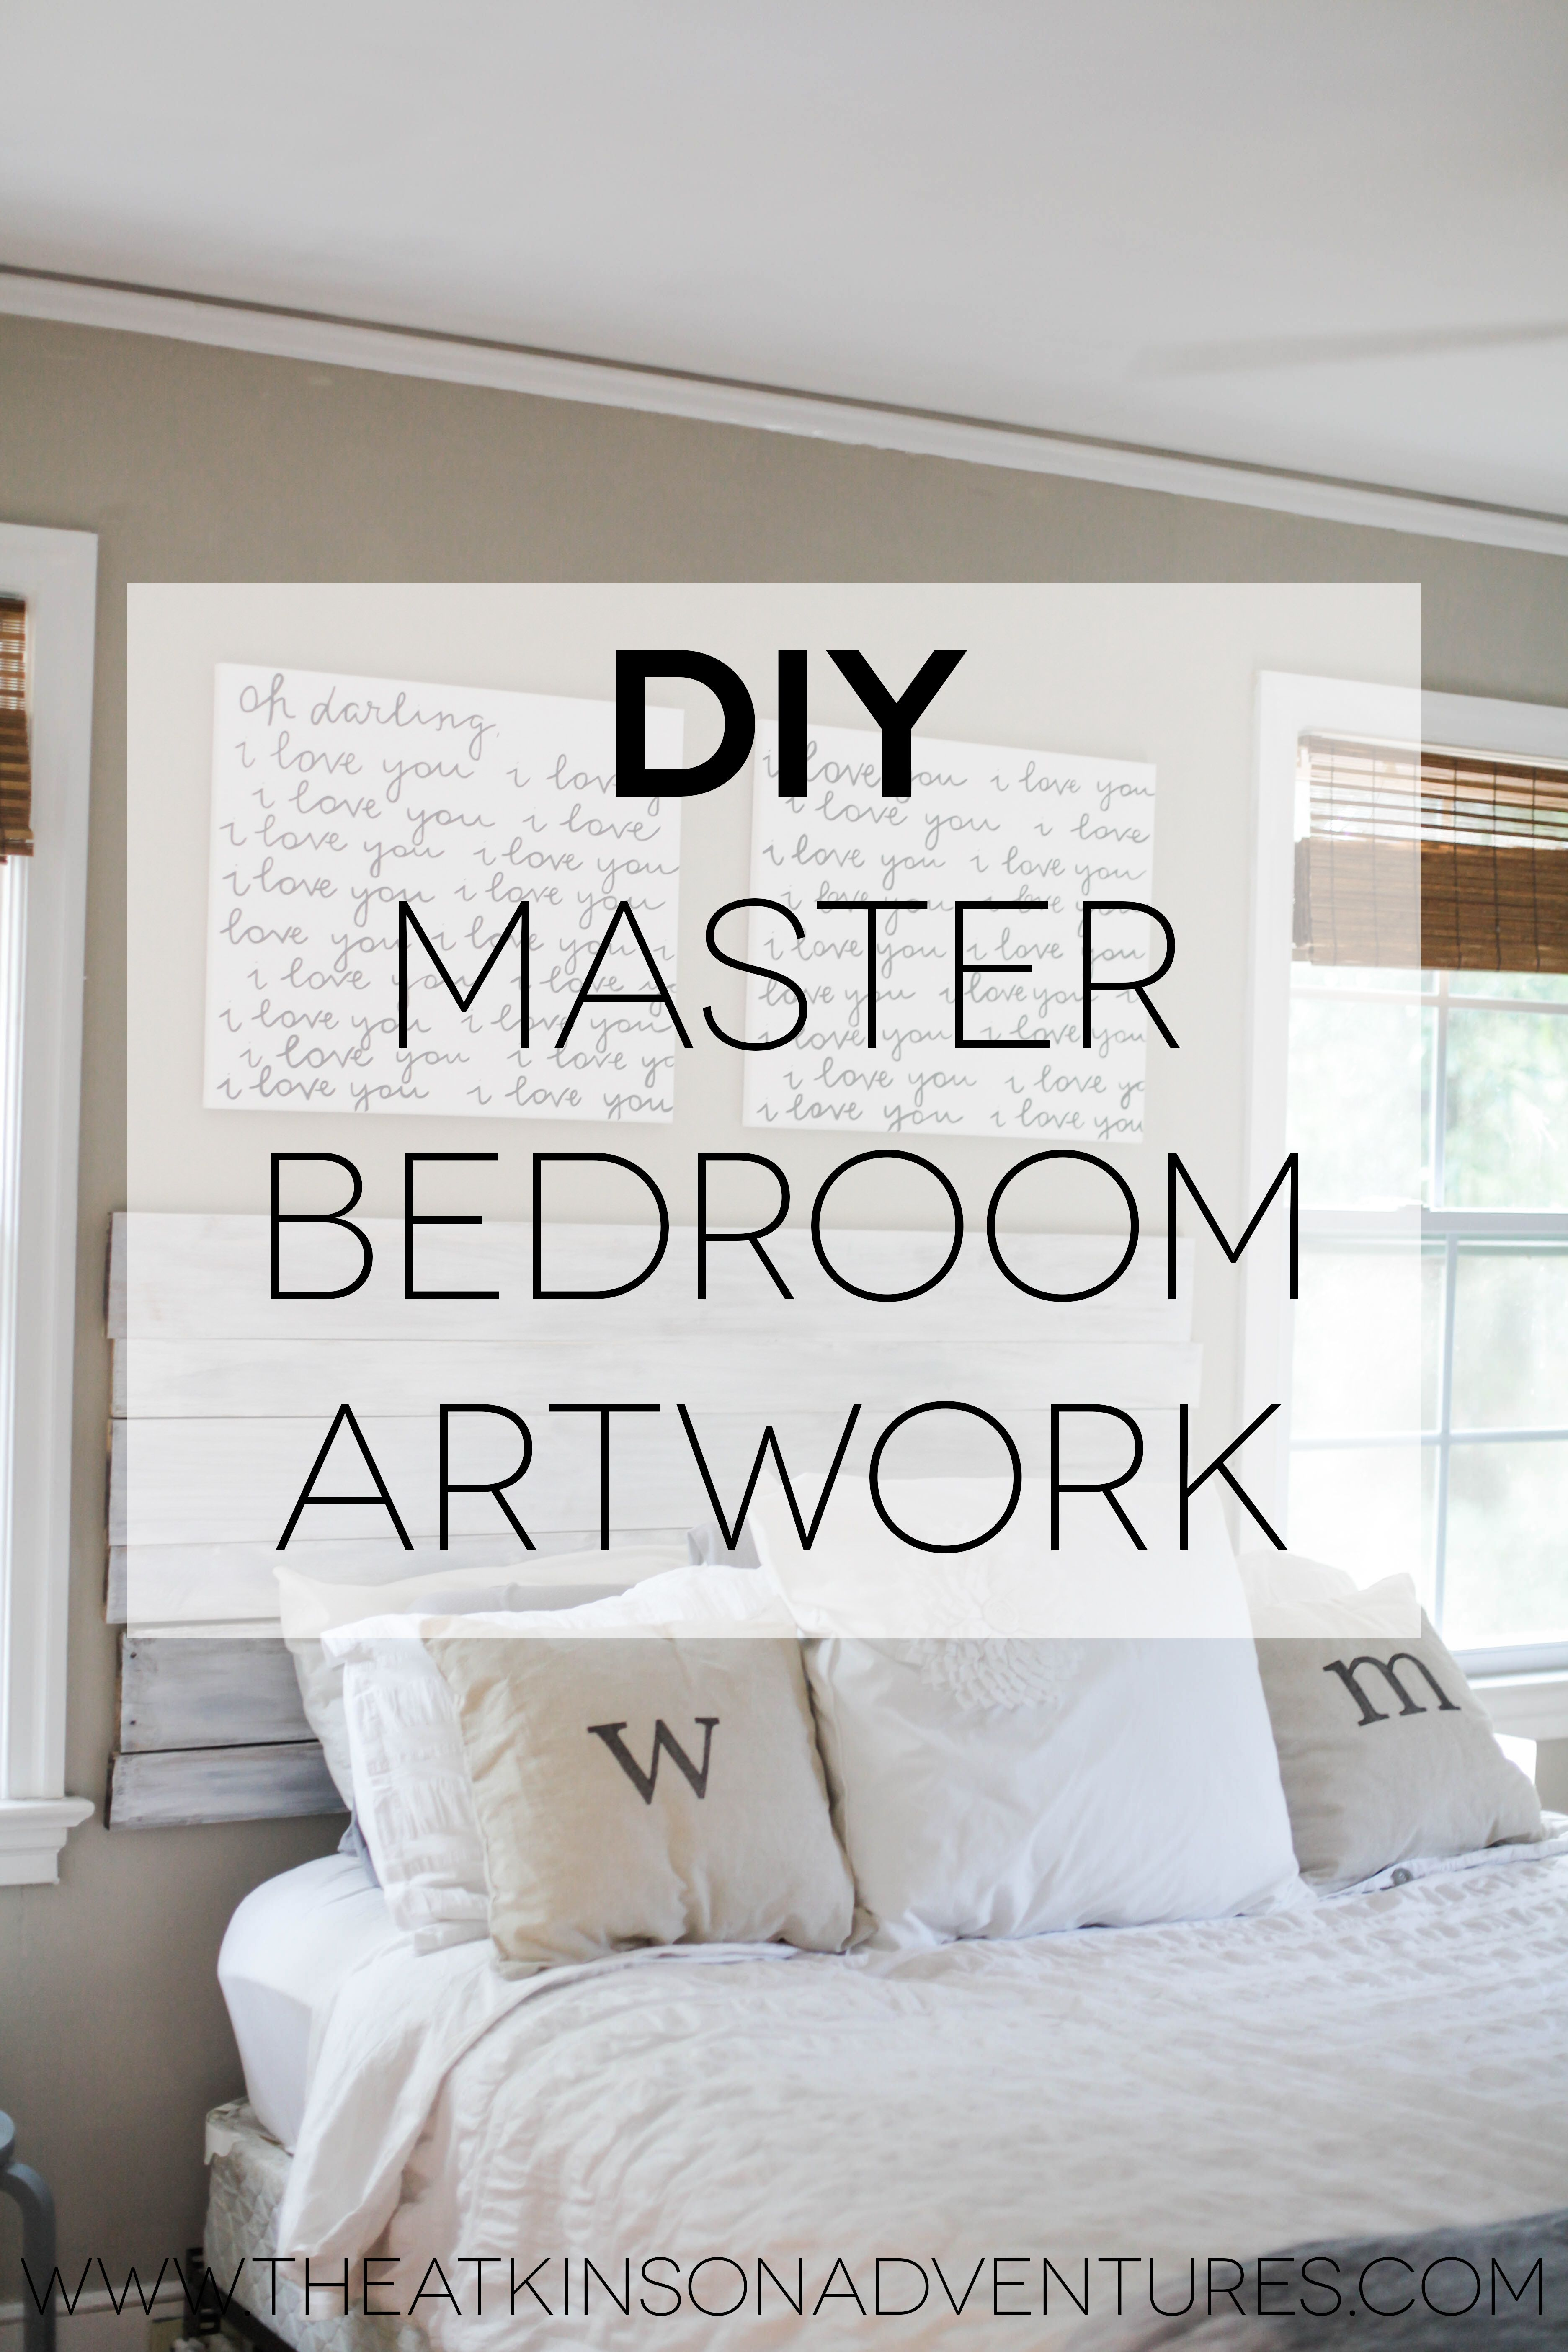 Ordinaire ... Art For A Bedroom Ideas. Learn Interior Design Techniques Of The Pros *  Check Out This Great Article. #simplehomedecor